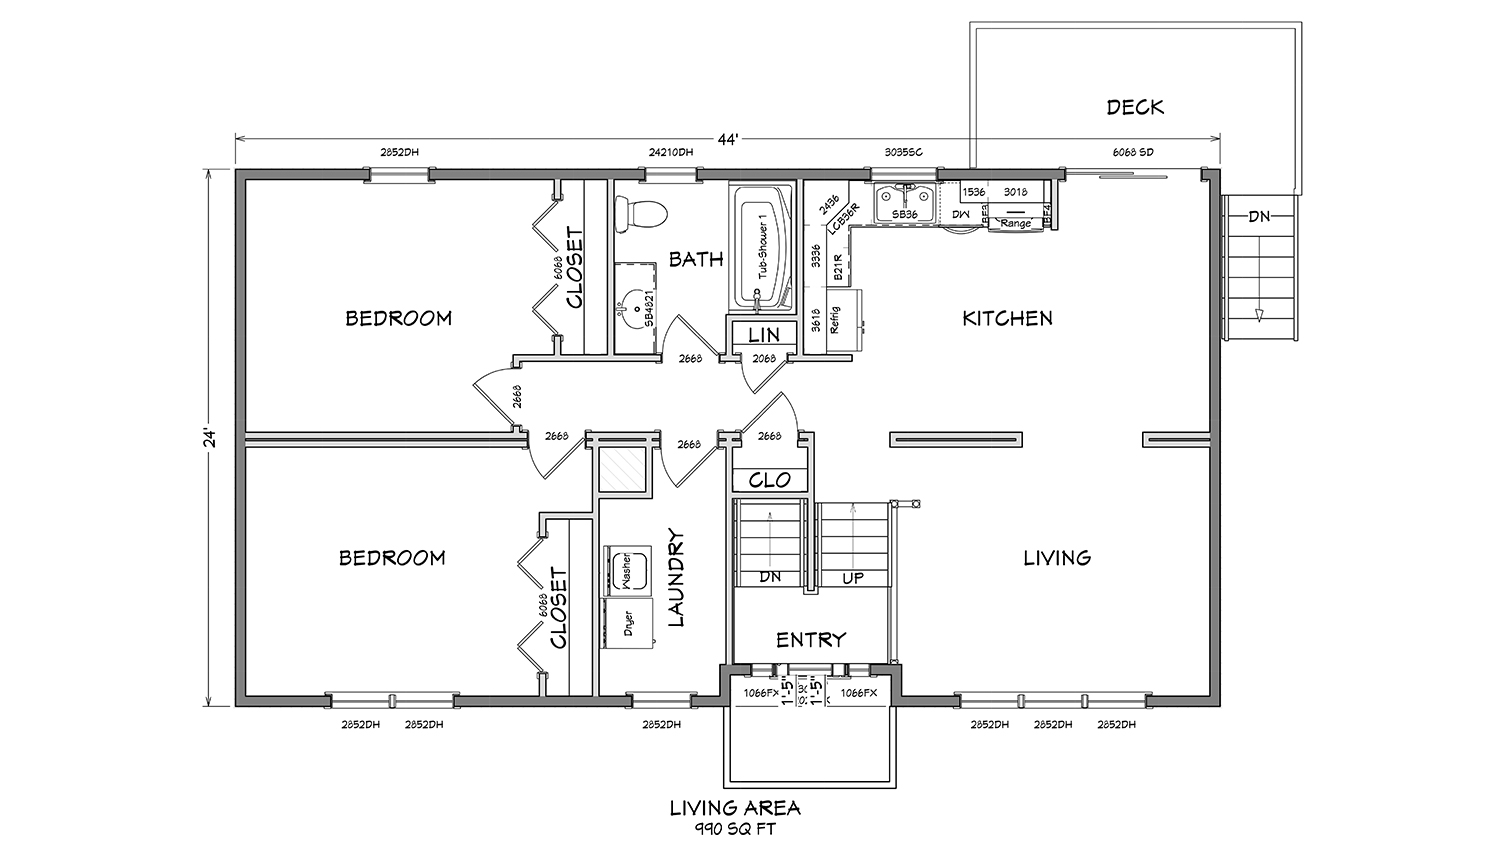 Bl001 cape cod modular home floor plan 01 glenco inc for Cape cod modular home floor plans